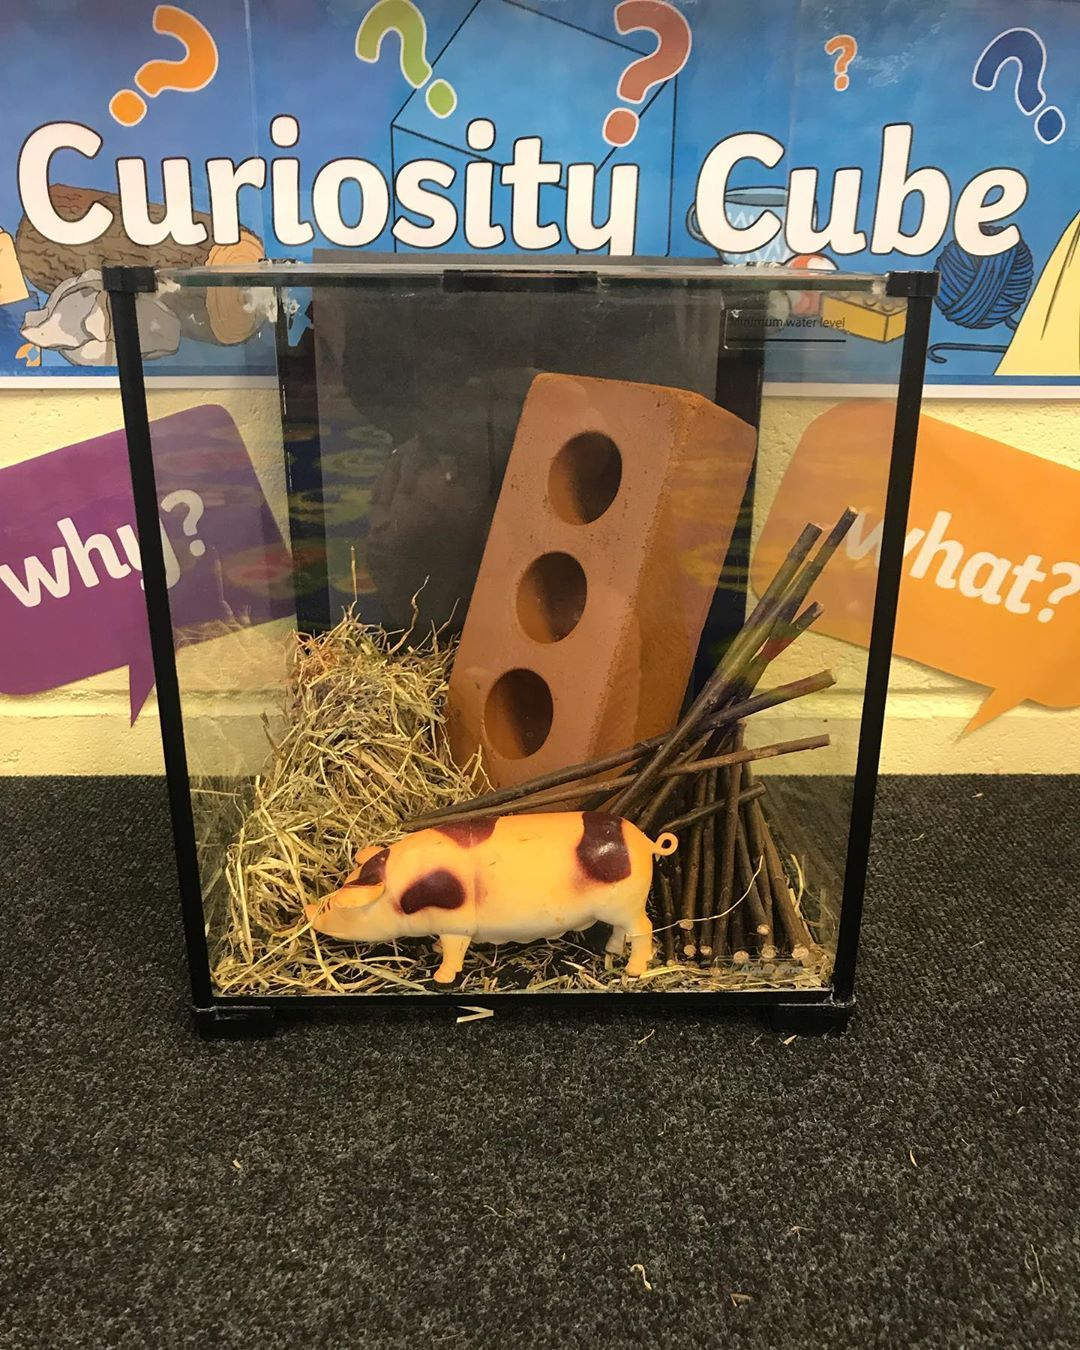 What's in the curiosity cube today!? I wonder what our story is....